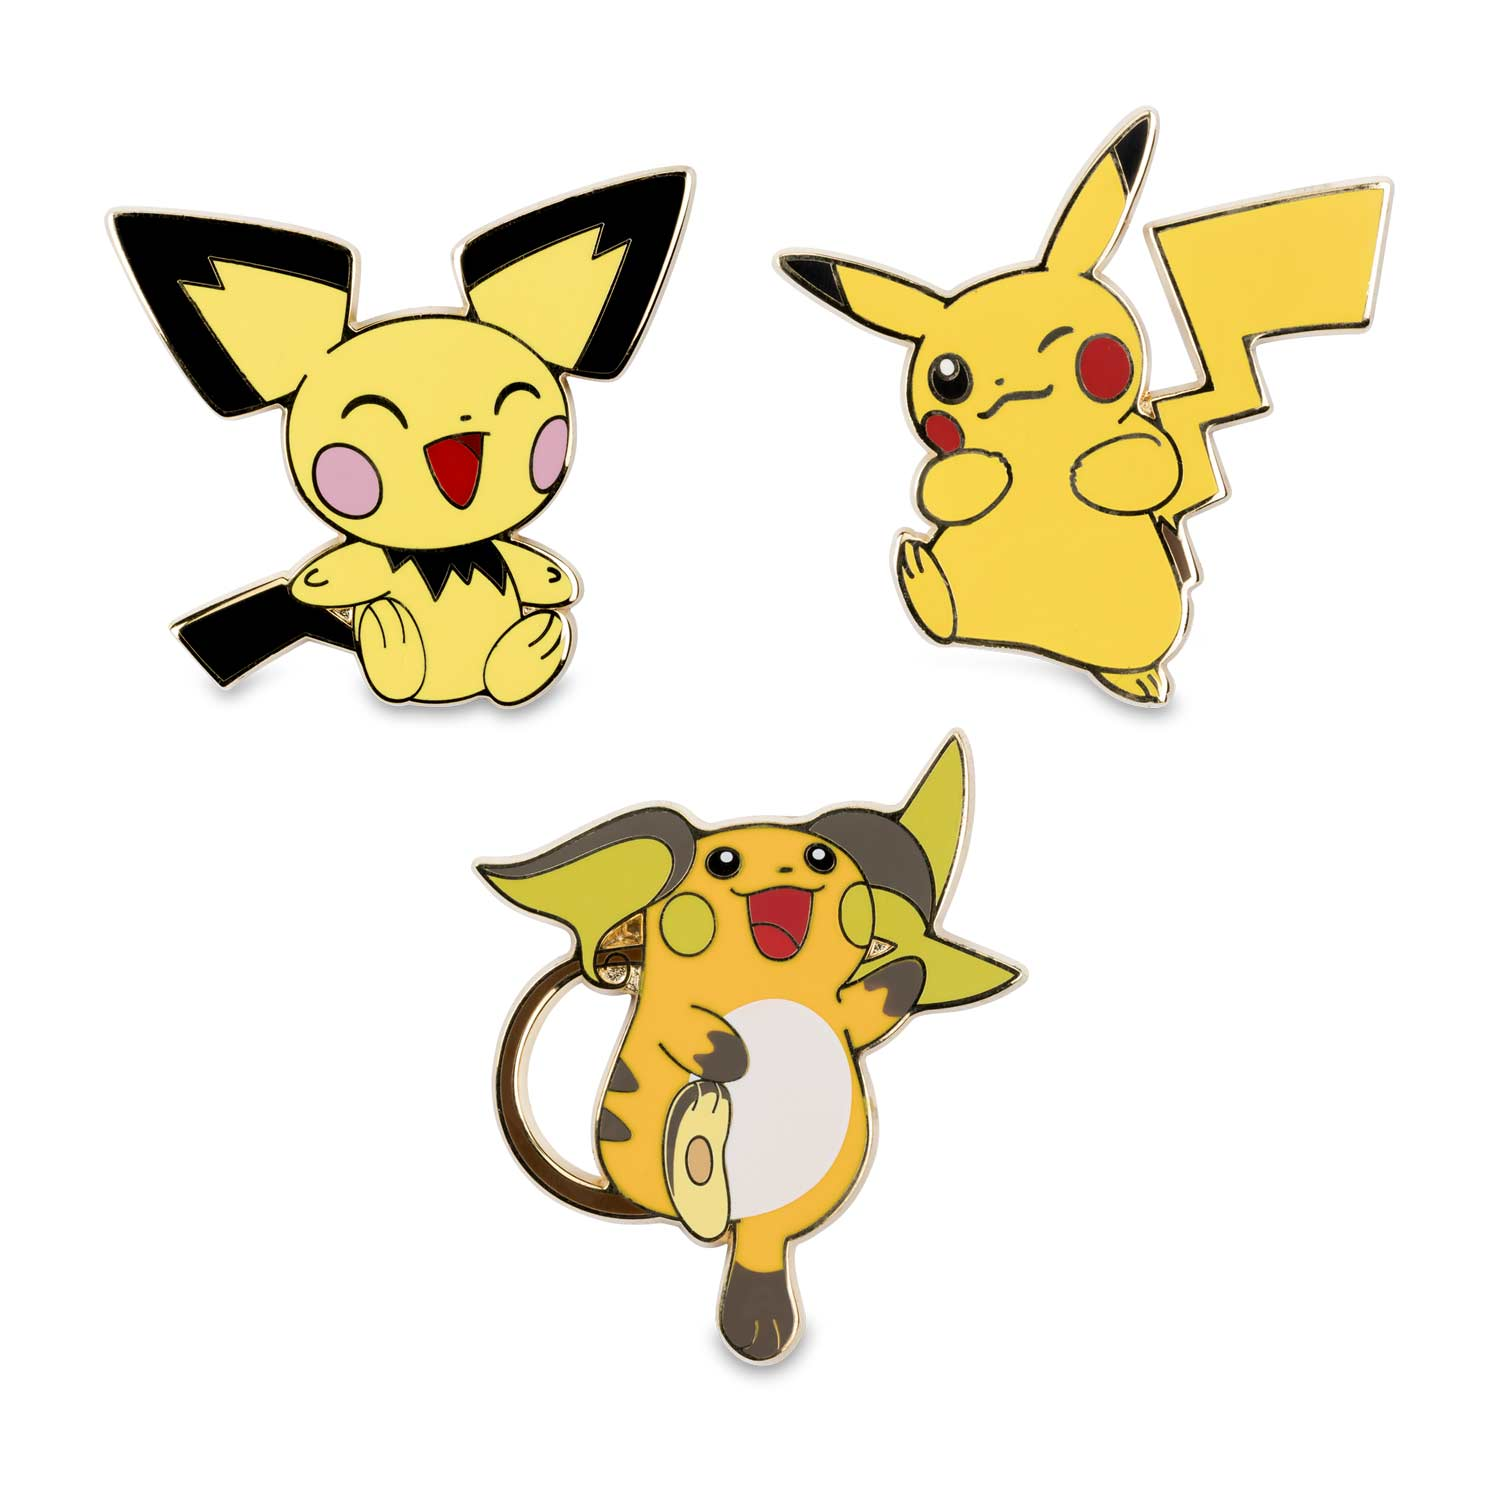 Image For Pichu Pikachu Raichu Pokemon Pins 3 Pack From